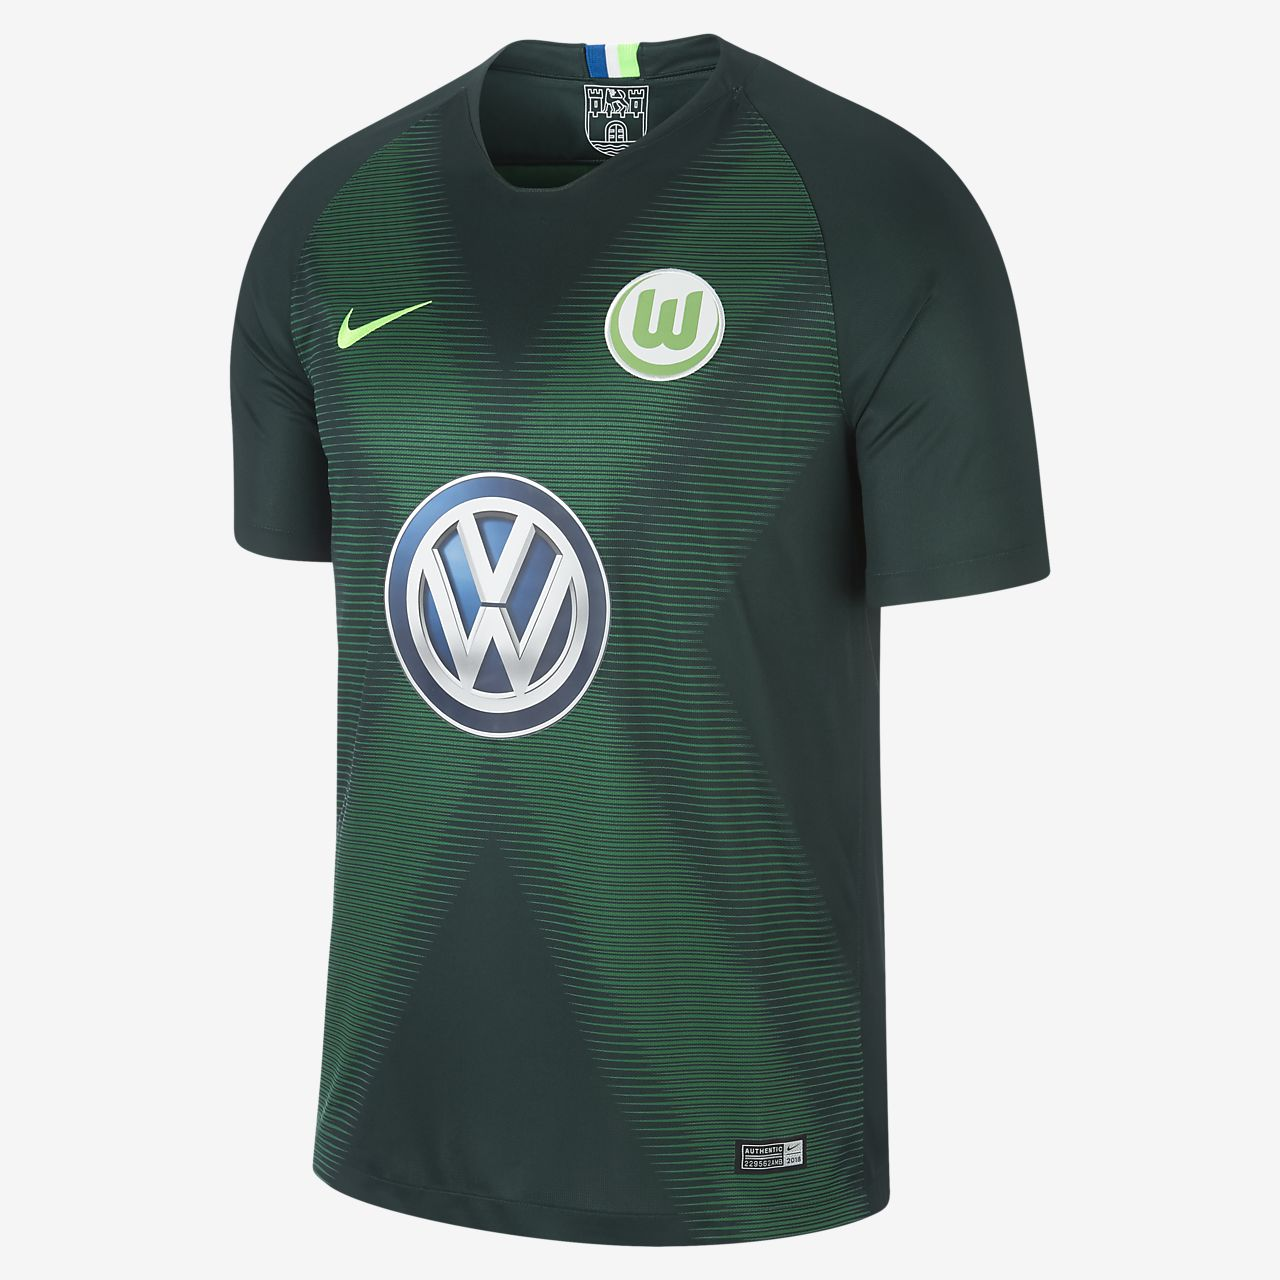 ae4584a7ee77 2018 19 VfL Wolfsburg Stadium Home Men s Football Shirt. Nike.com GB